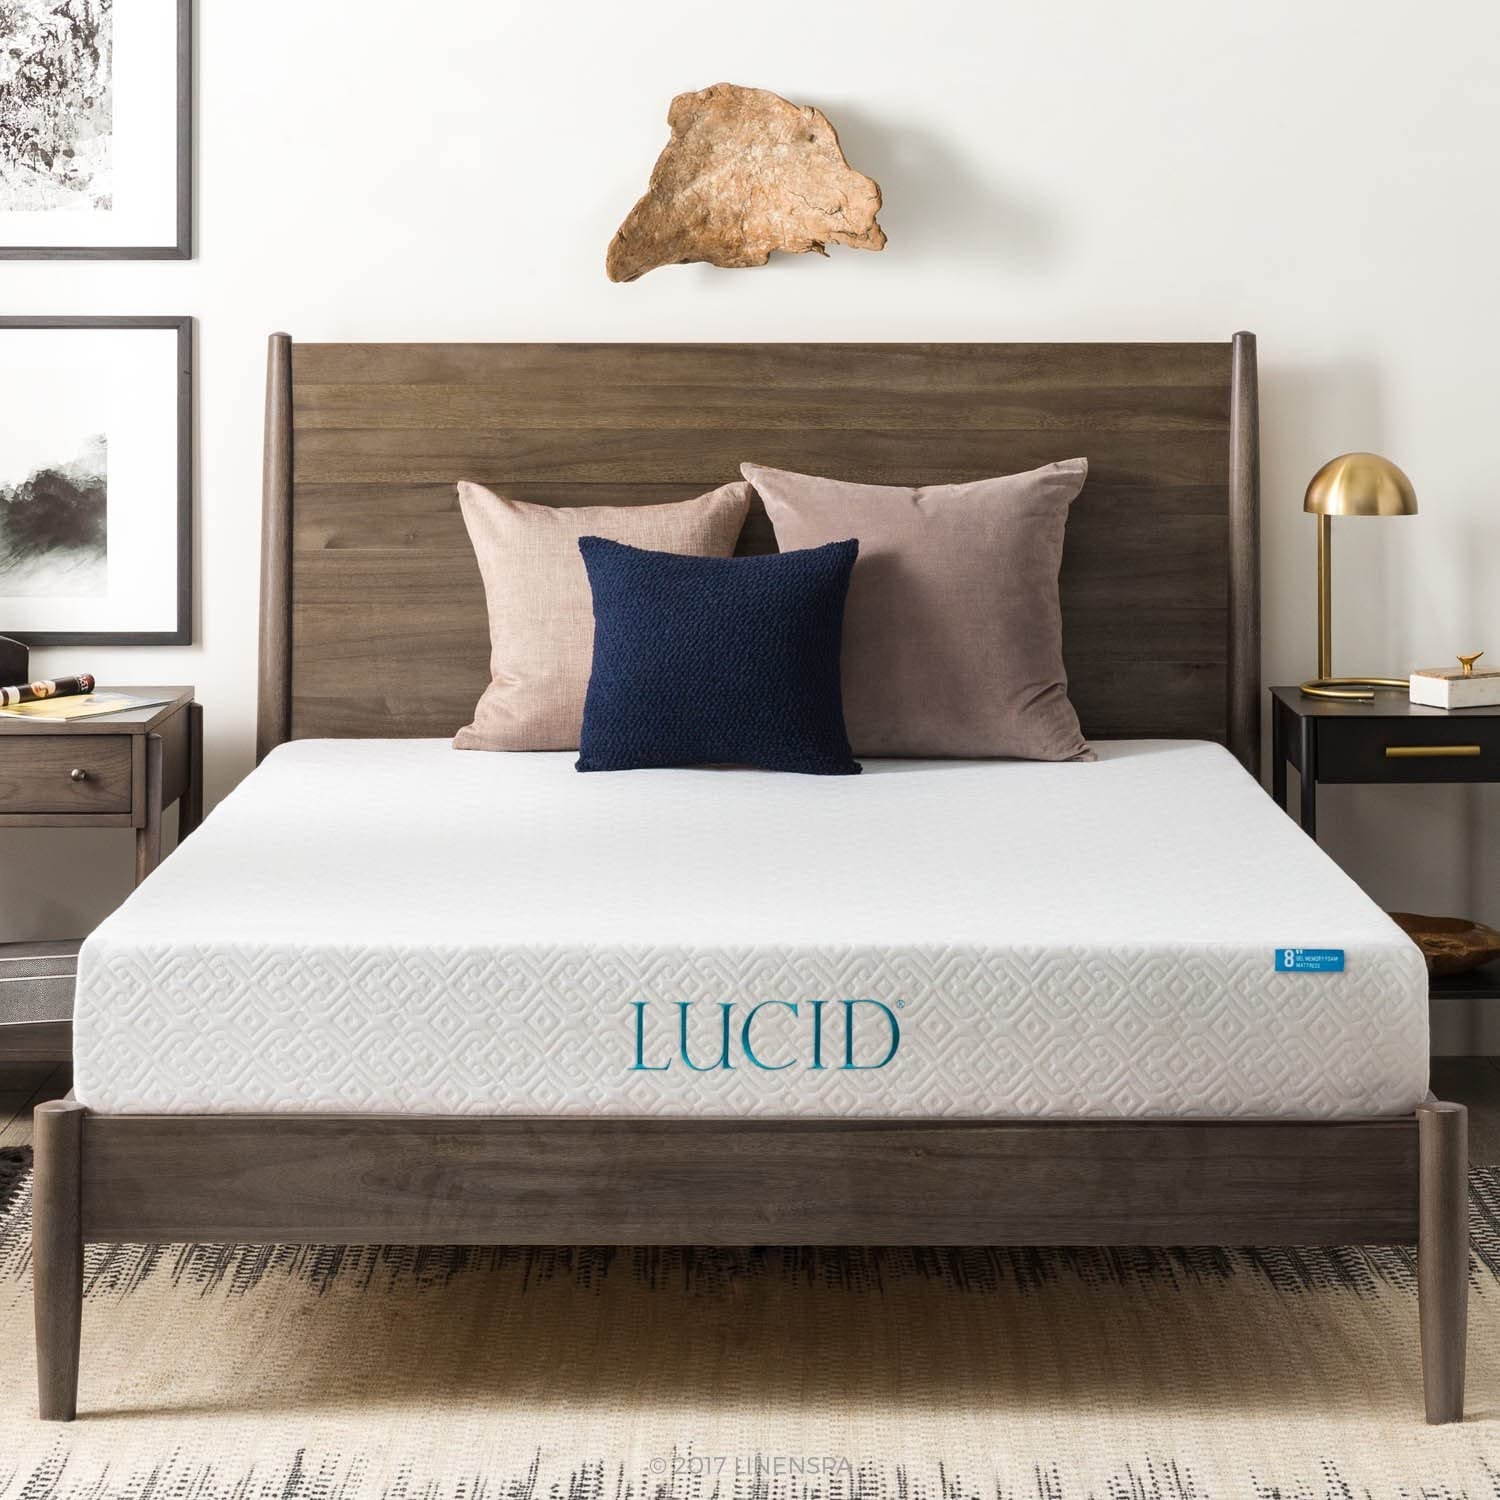 LUCID 8 Inch Gel Infused Memory Foam Mattress – Medium Firm Feel – CertiPUR-US Certified – 10-Year warranty – King